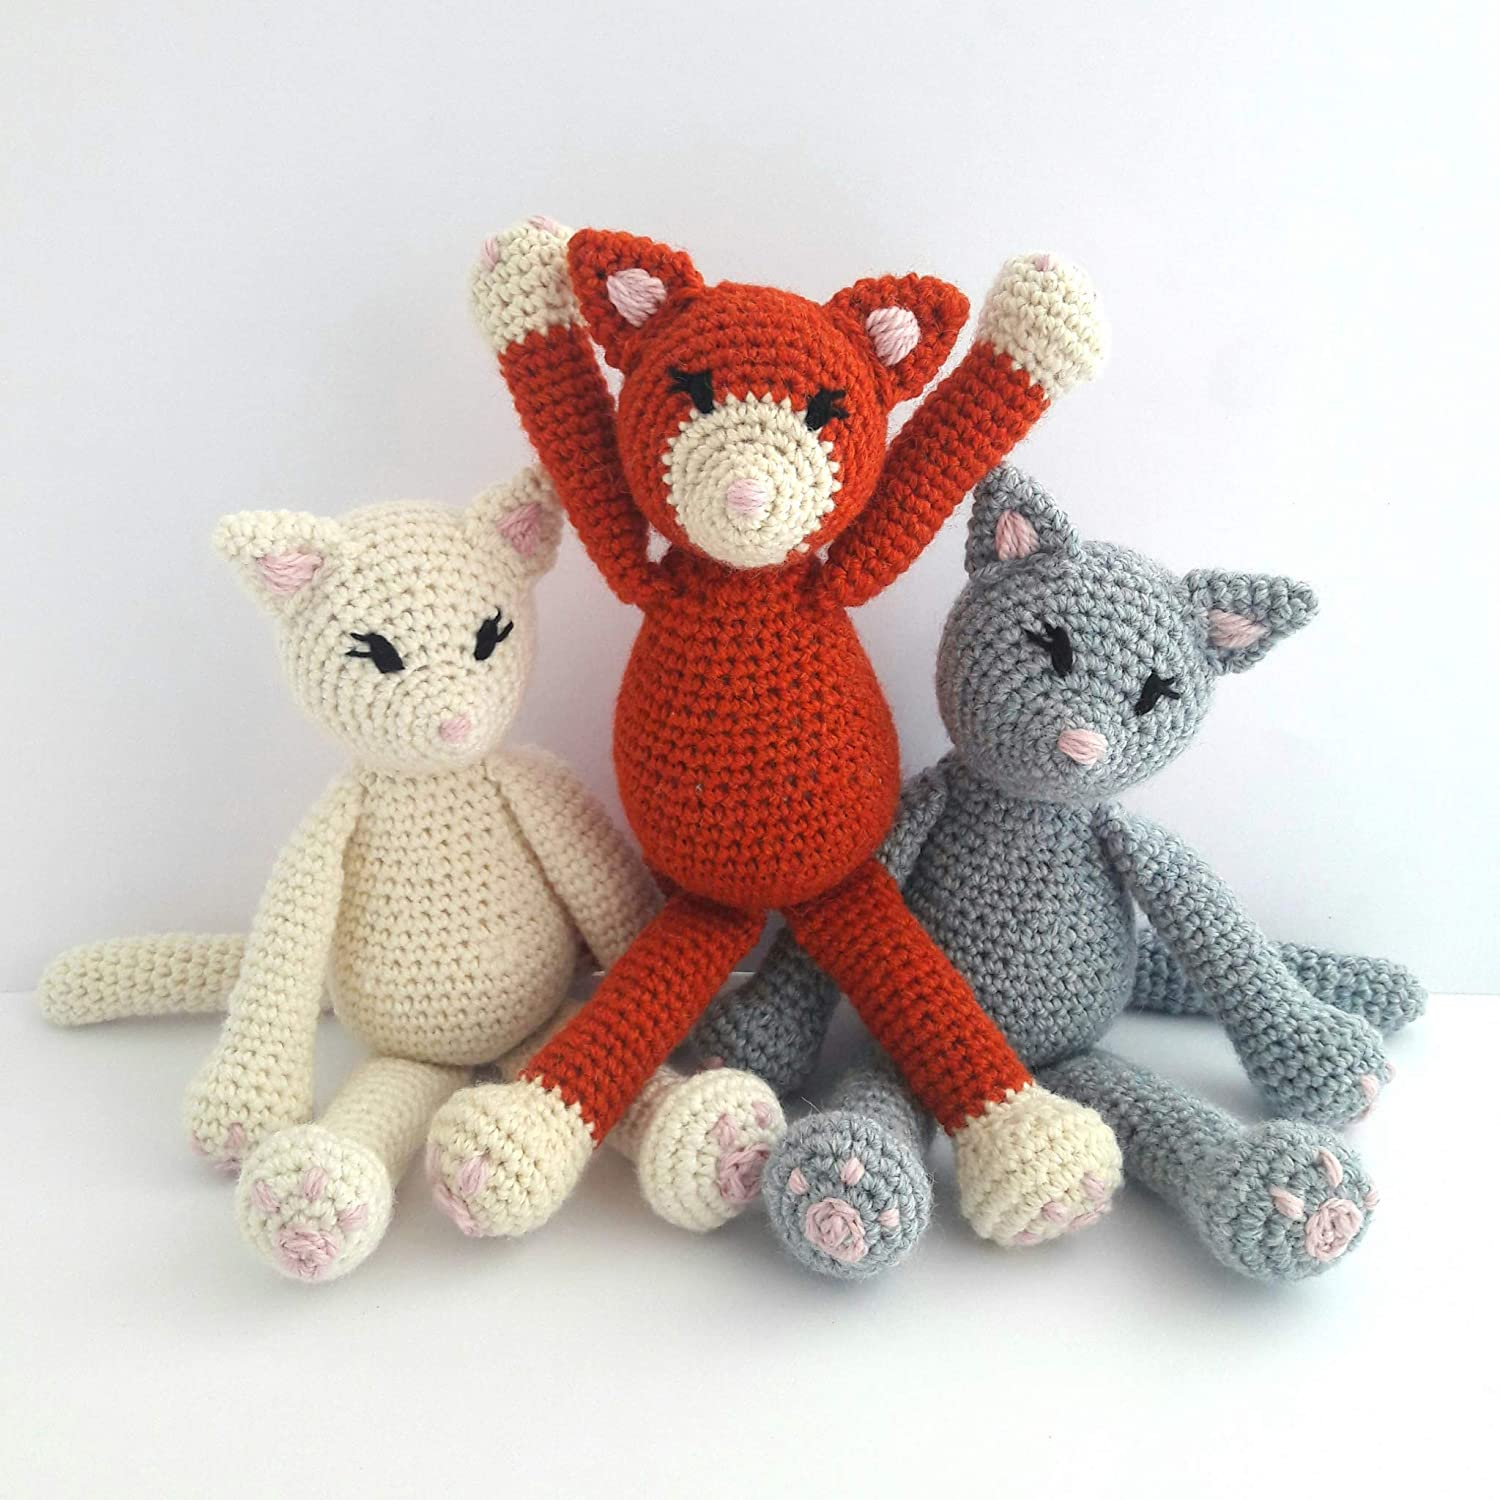 DMC Petra Amigurumi LITTLE LADY NINJAS Crochet KIT | 1500x1500